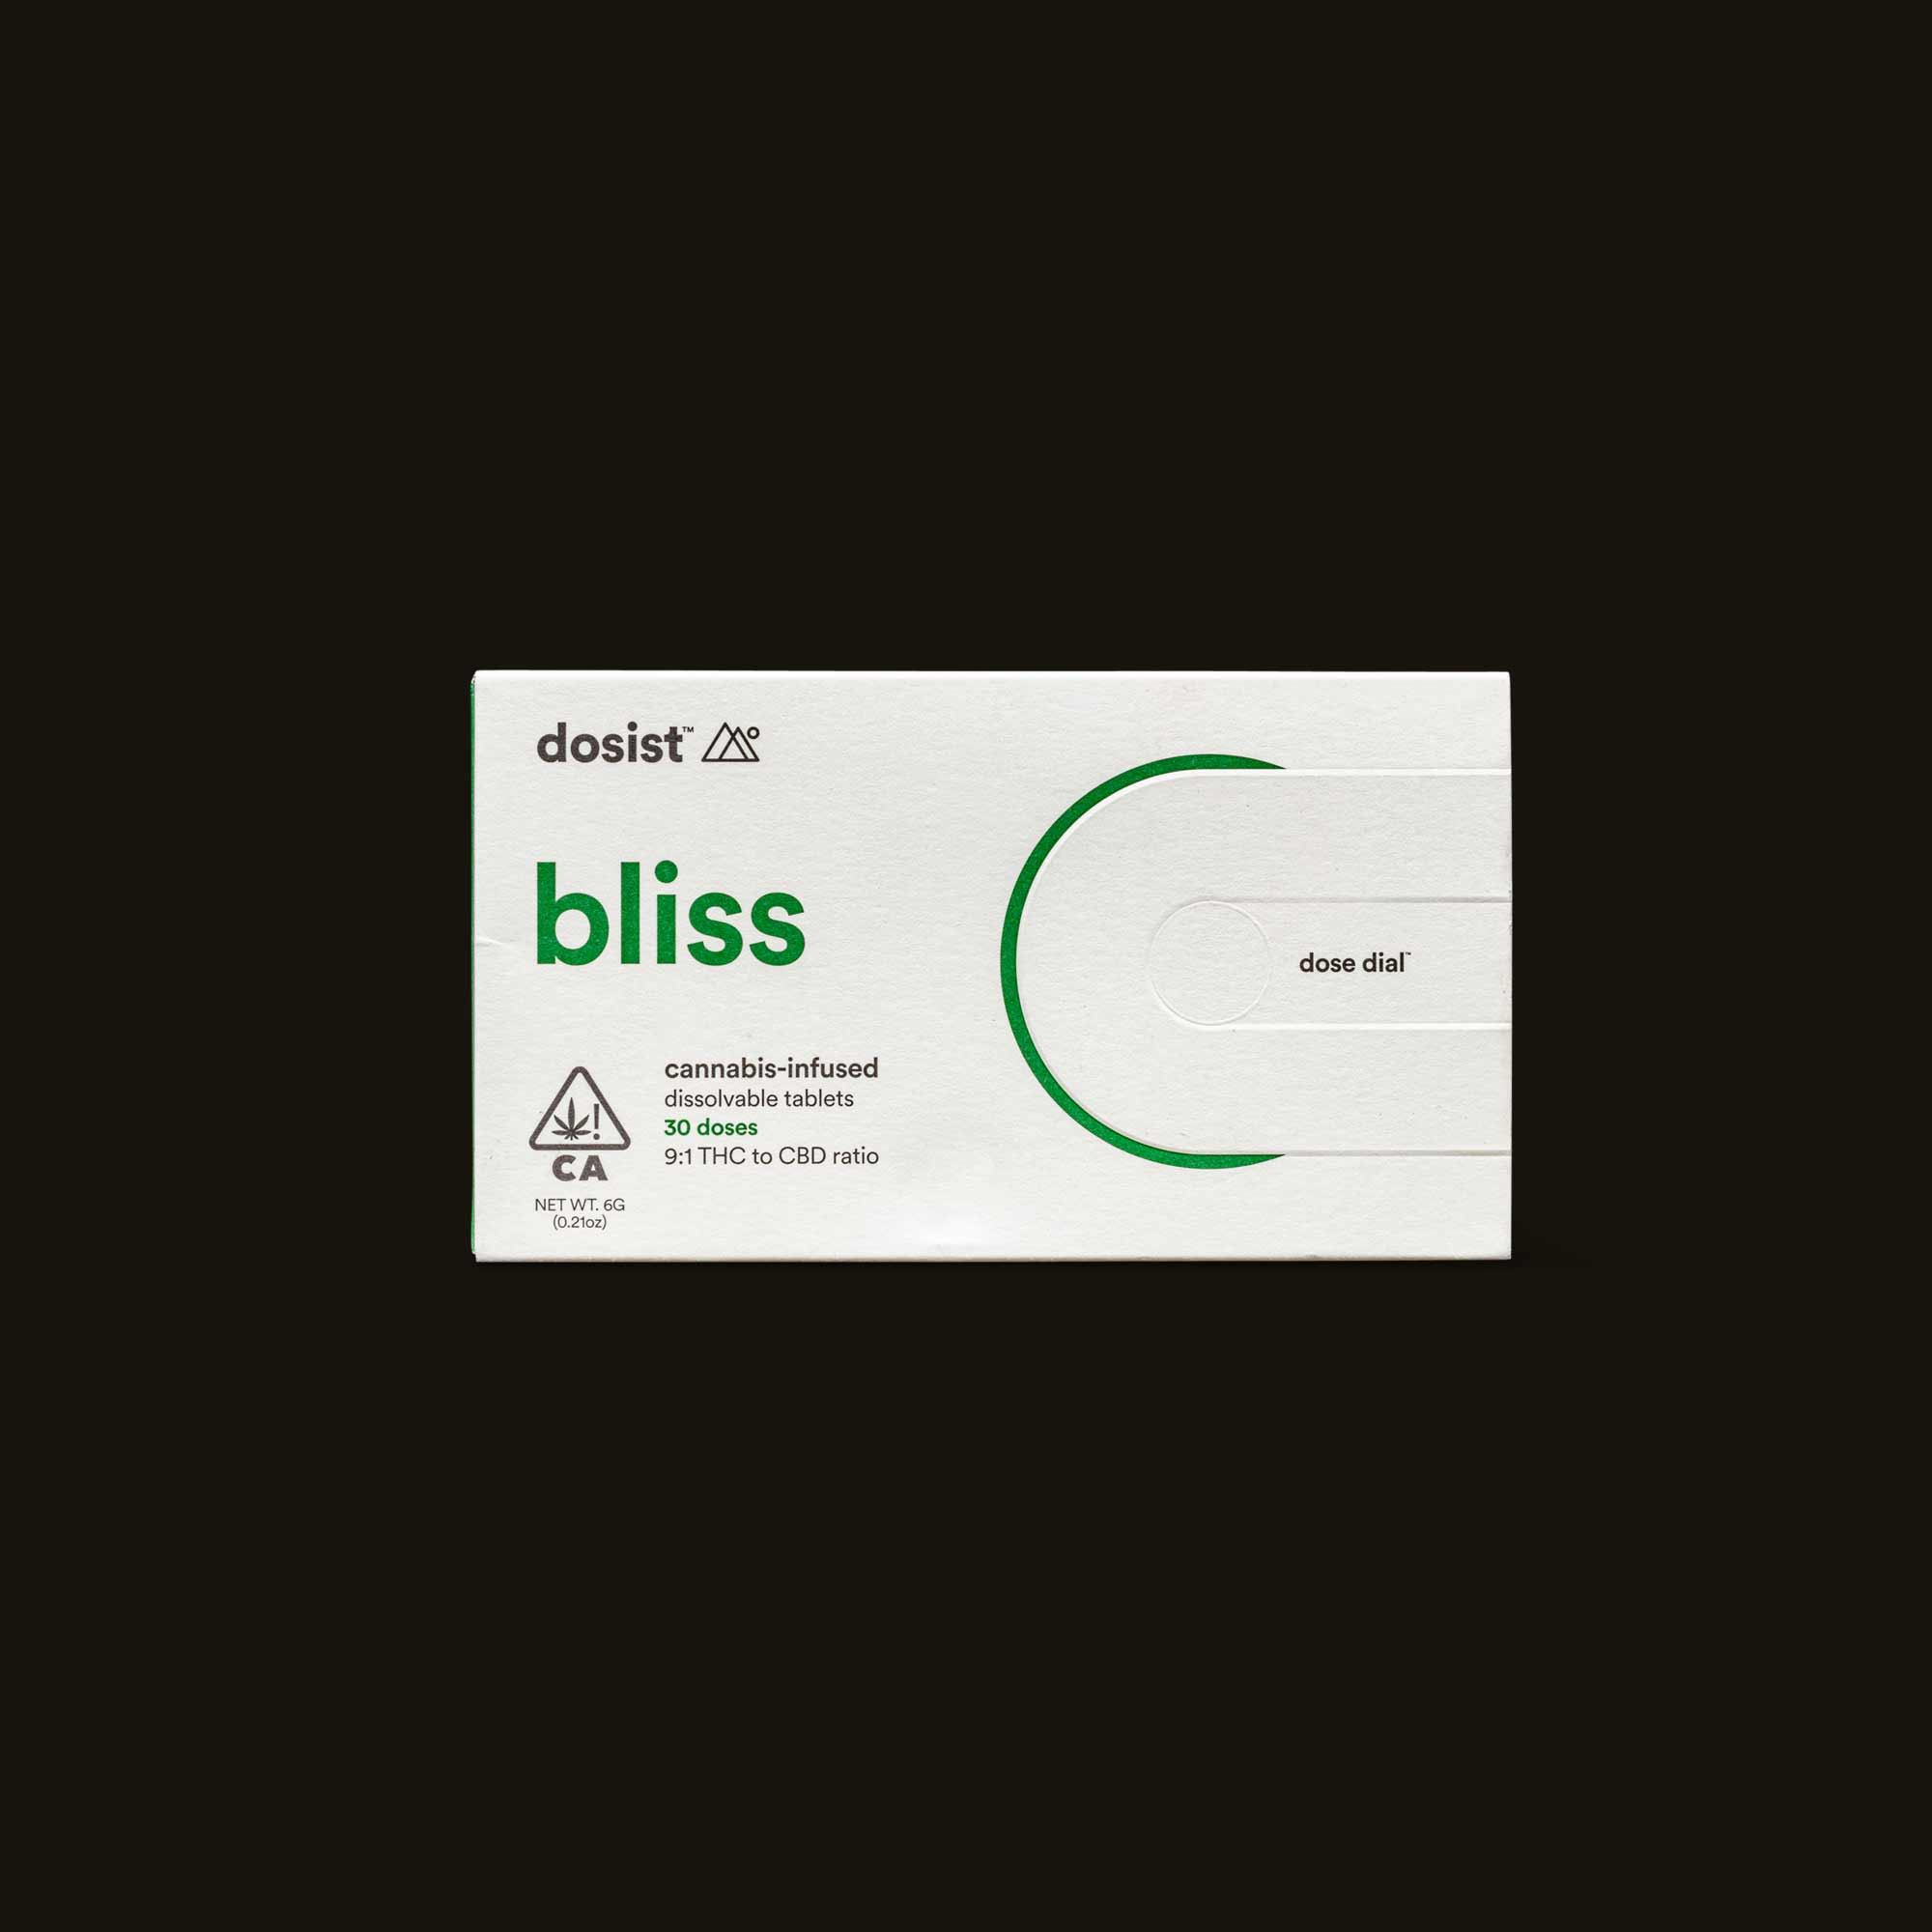 dosist bliss dose dial